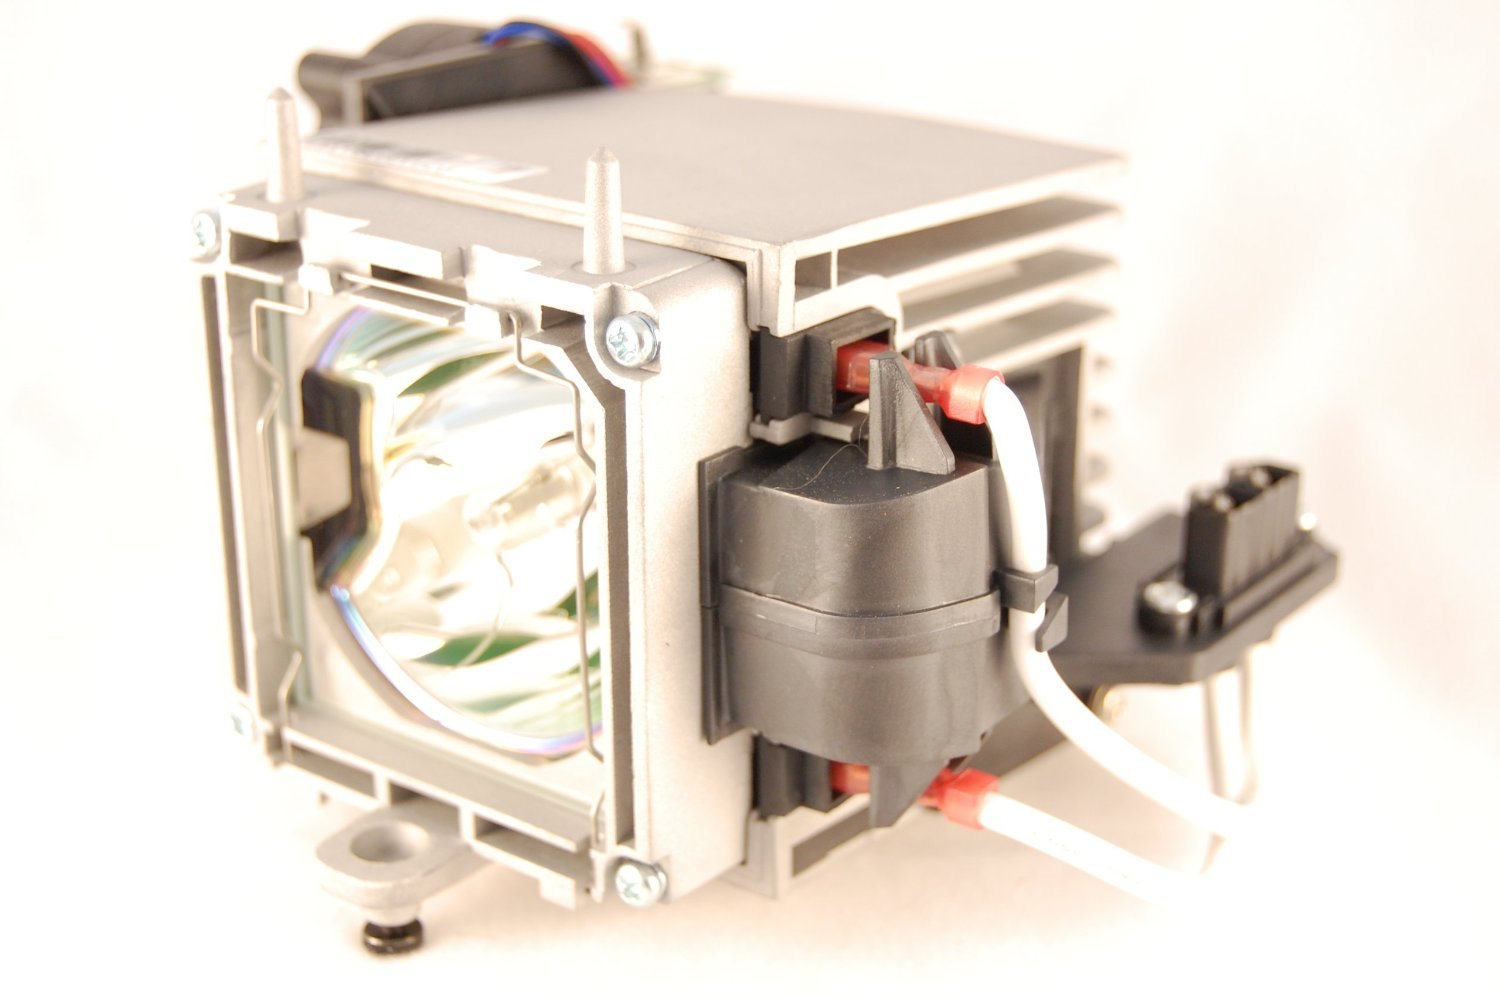 SP-LAMP-006 for Infocus LP650 LP7200 LP7300 LS5700 LS7200 LS7205 LS7210 / ASK C200 /PROXIMA DP6500 Projector Lamp Bulb With Case